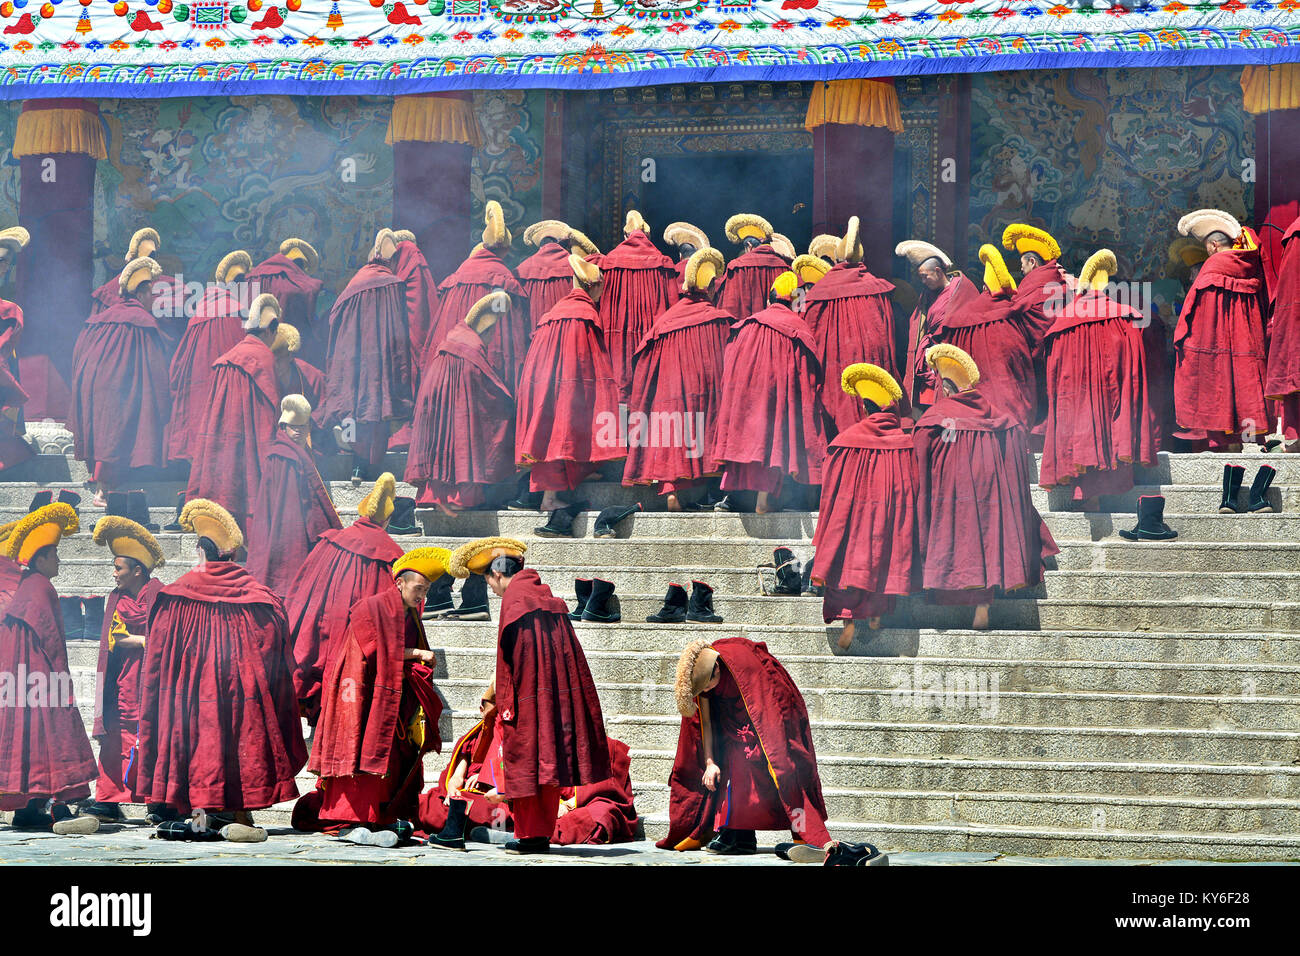 It is Assembly time for the Tibetan yellow hat monks in the main hall of  Labrang monastery in Xiahe, Gansu province, - Stock Image